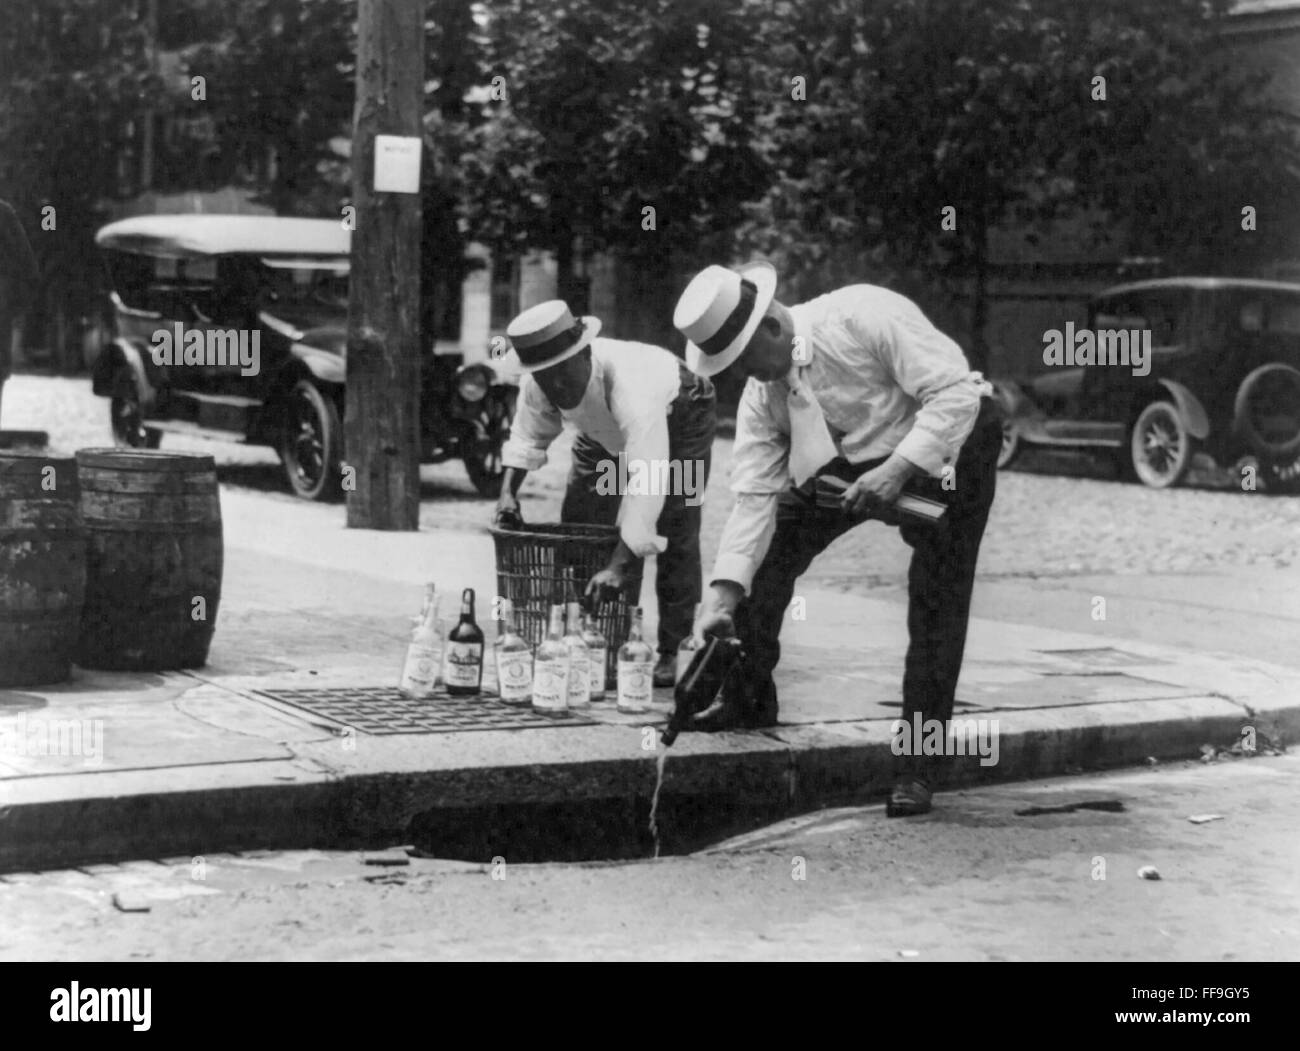 Agents pouring whiskey into sewer during probibition, USA. Photo c.1920-1930 - Stock Image